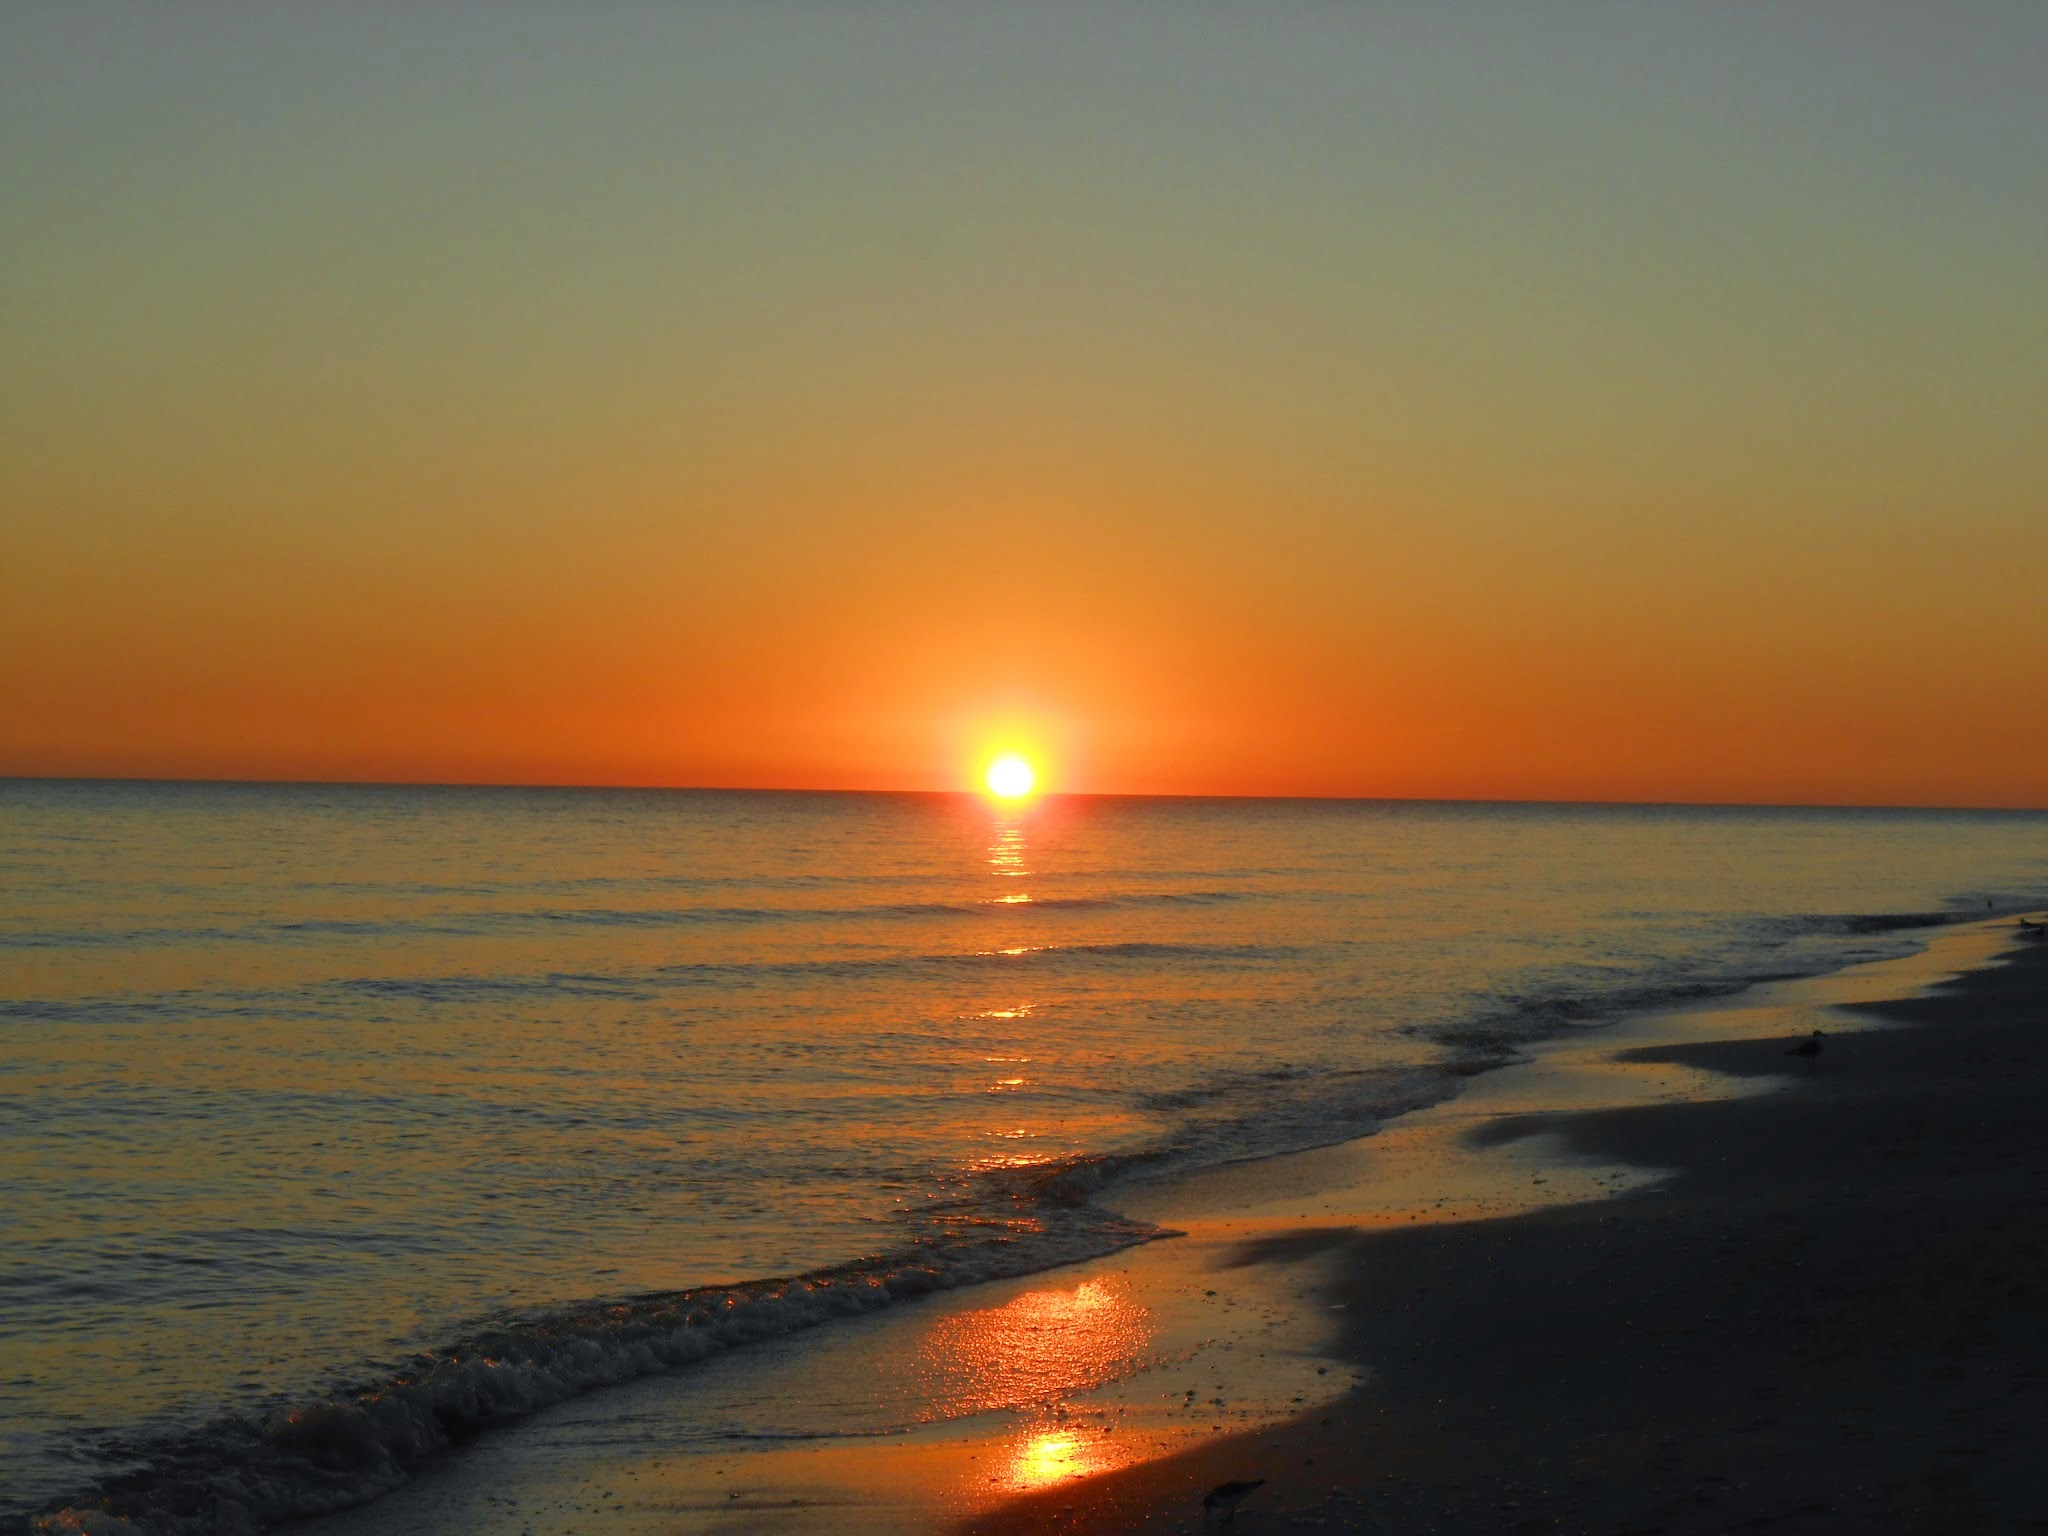 Sunset over the Gulf of Mexico at Gulfside Beach, Sanibel.